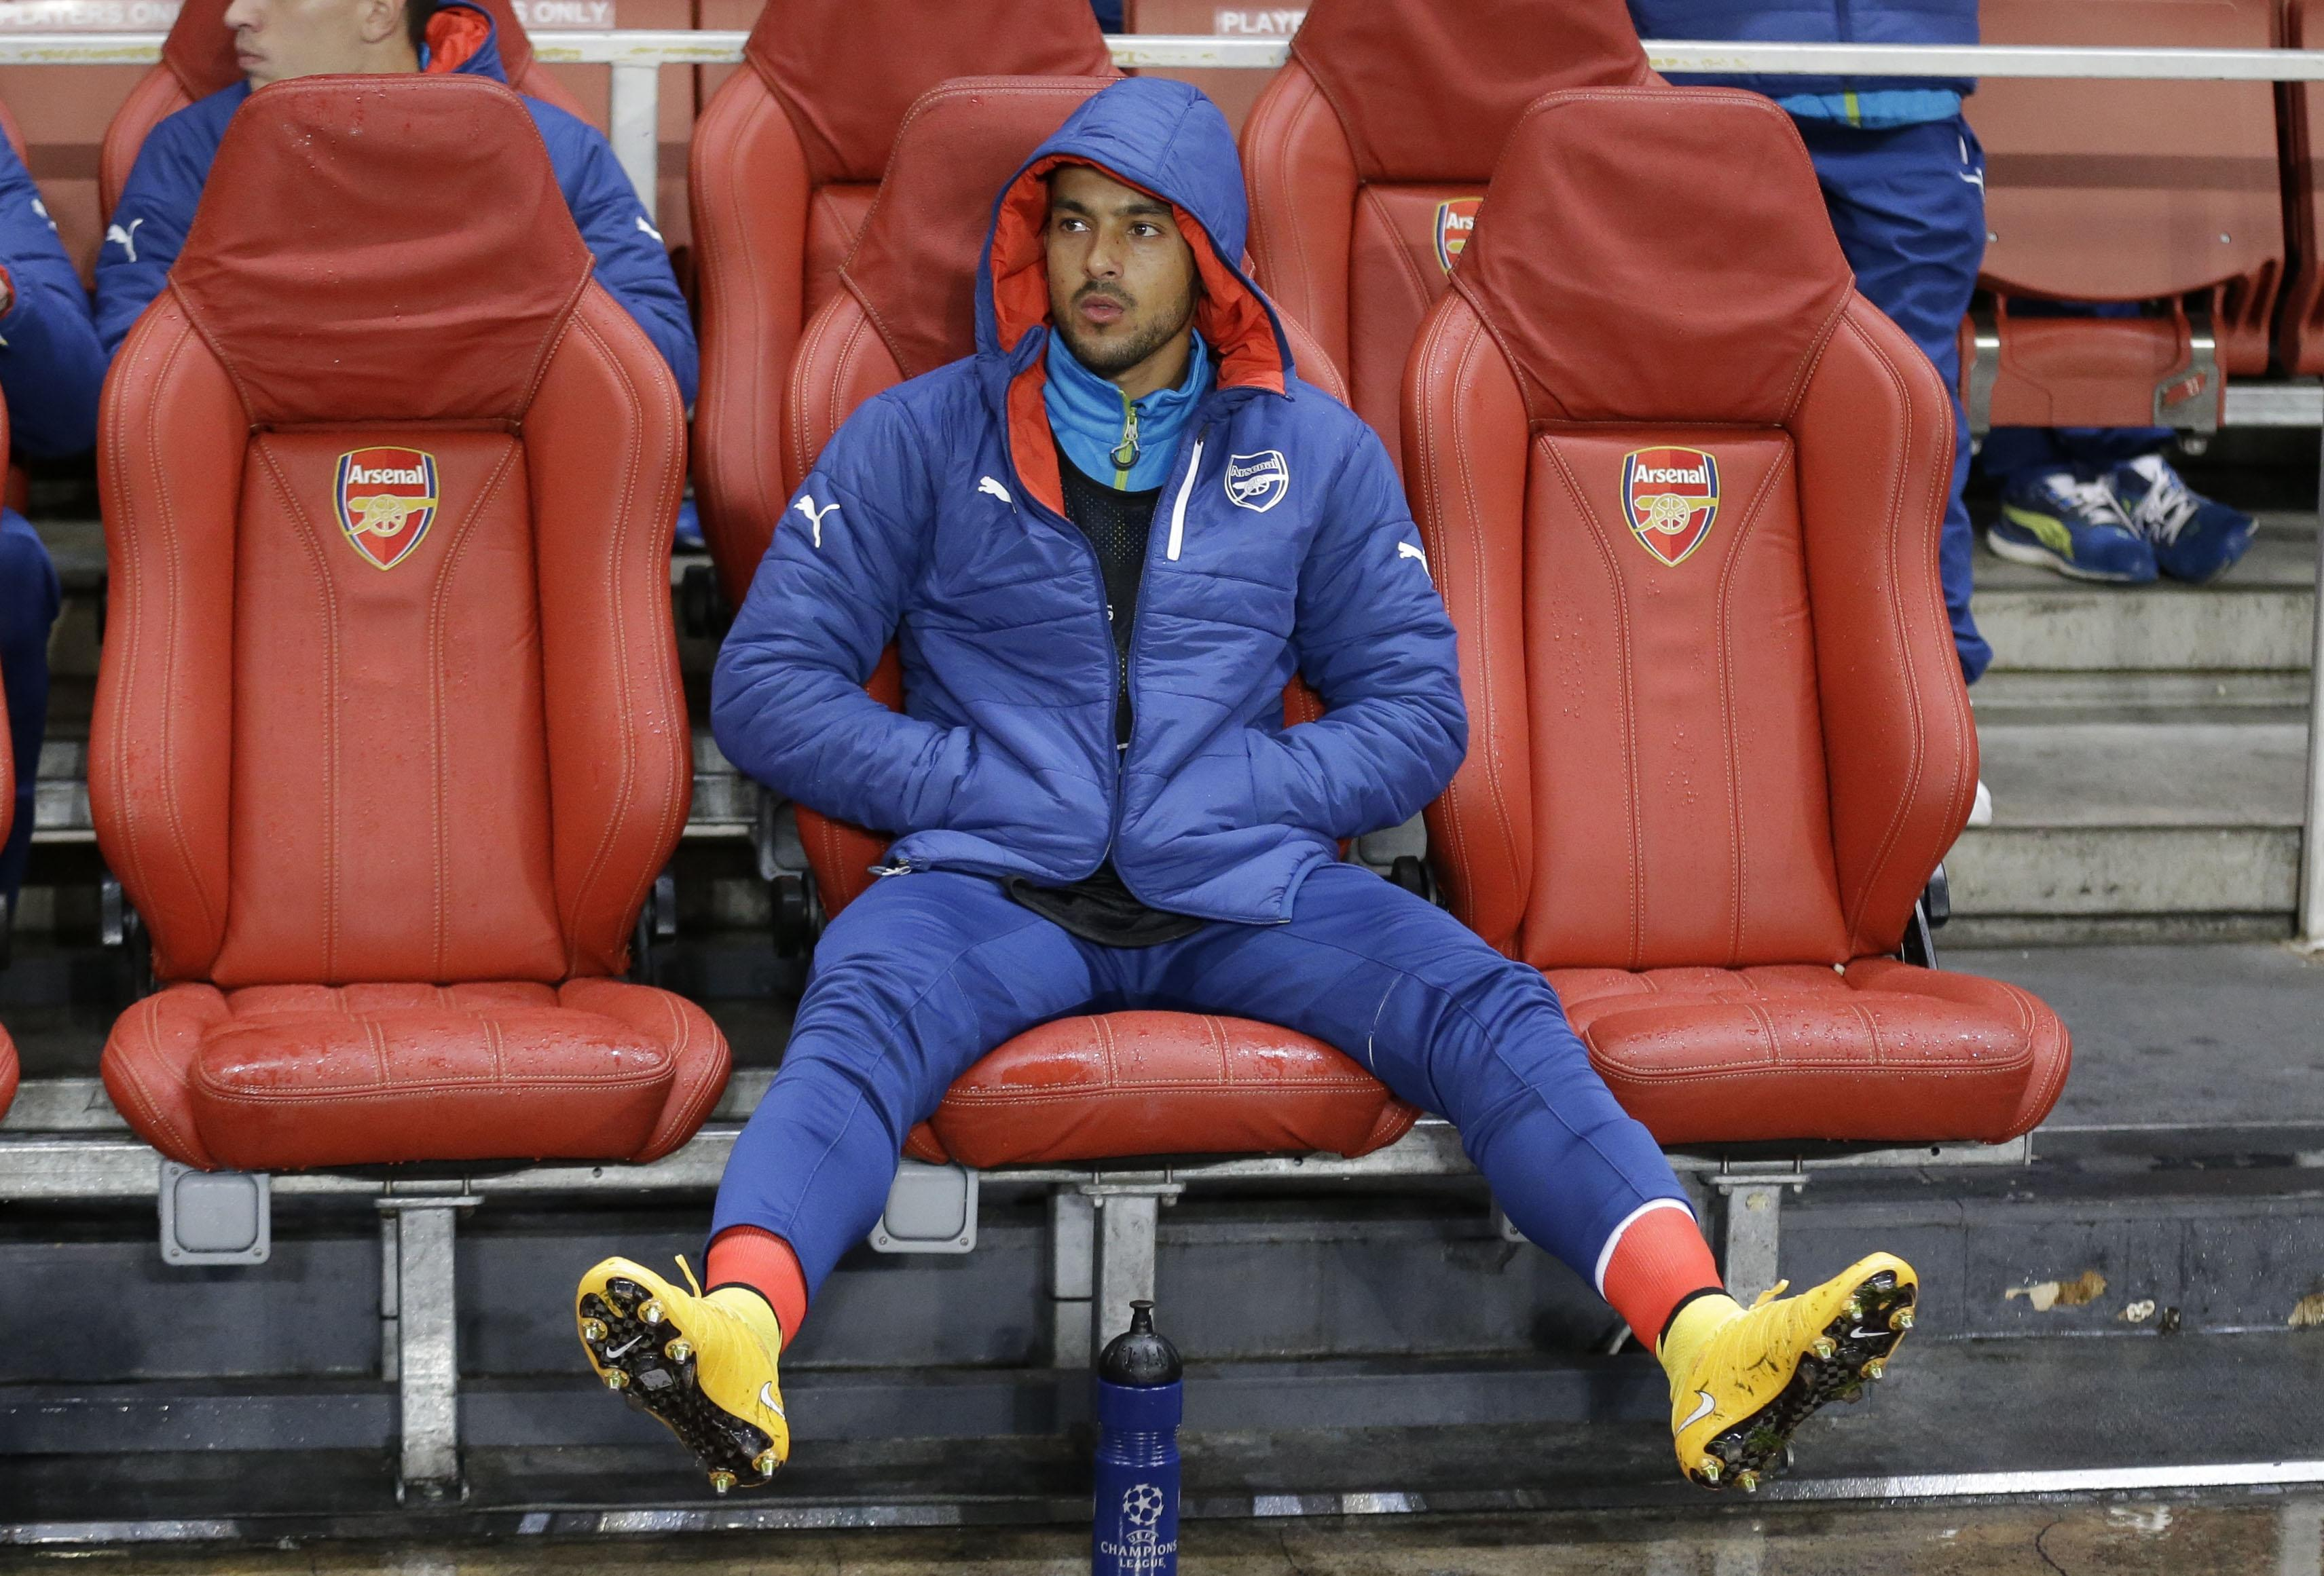 Walcott instead became a prolific bench warmer